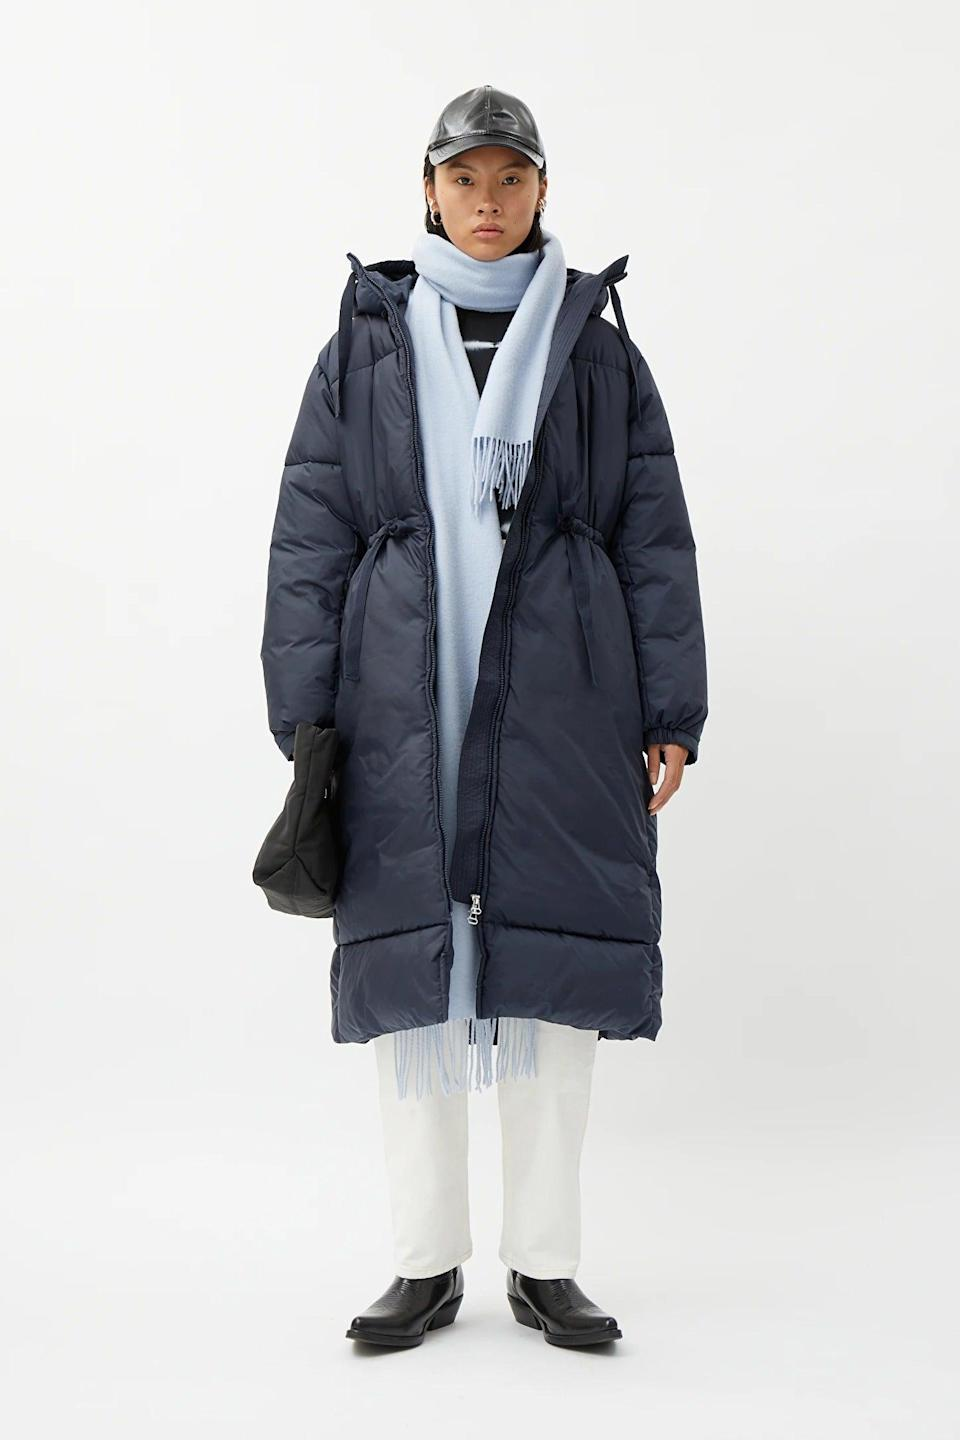 """<br><br><strong>Weekday</strong> Ally Long Puffer Jacket, $, available at <a href=""""https://www.weekday.com/en_gbp/women/jackets-coats/product.ally-long-puffer-jacket-blue.0921249002.html"""" rel=""""nofollow noopener"""" target=""""_blank"""" data-ylk=""""slk:Weekday"""" class=""""link rapid-noclick-resp"""">Weekday</a>"""